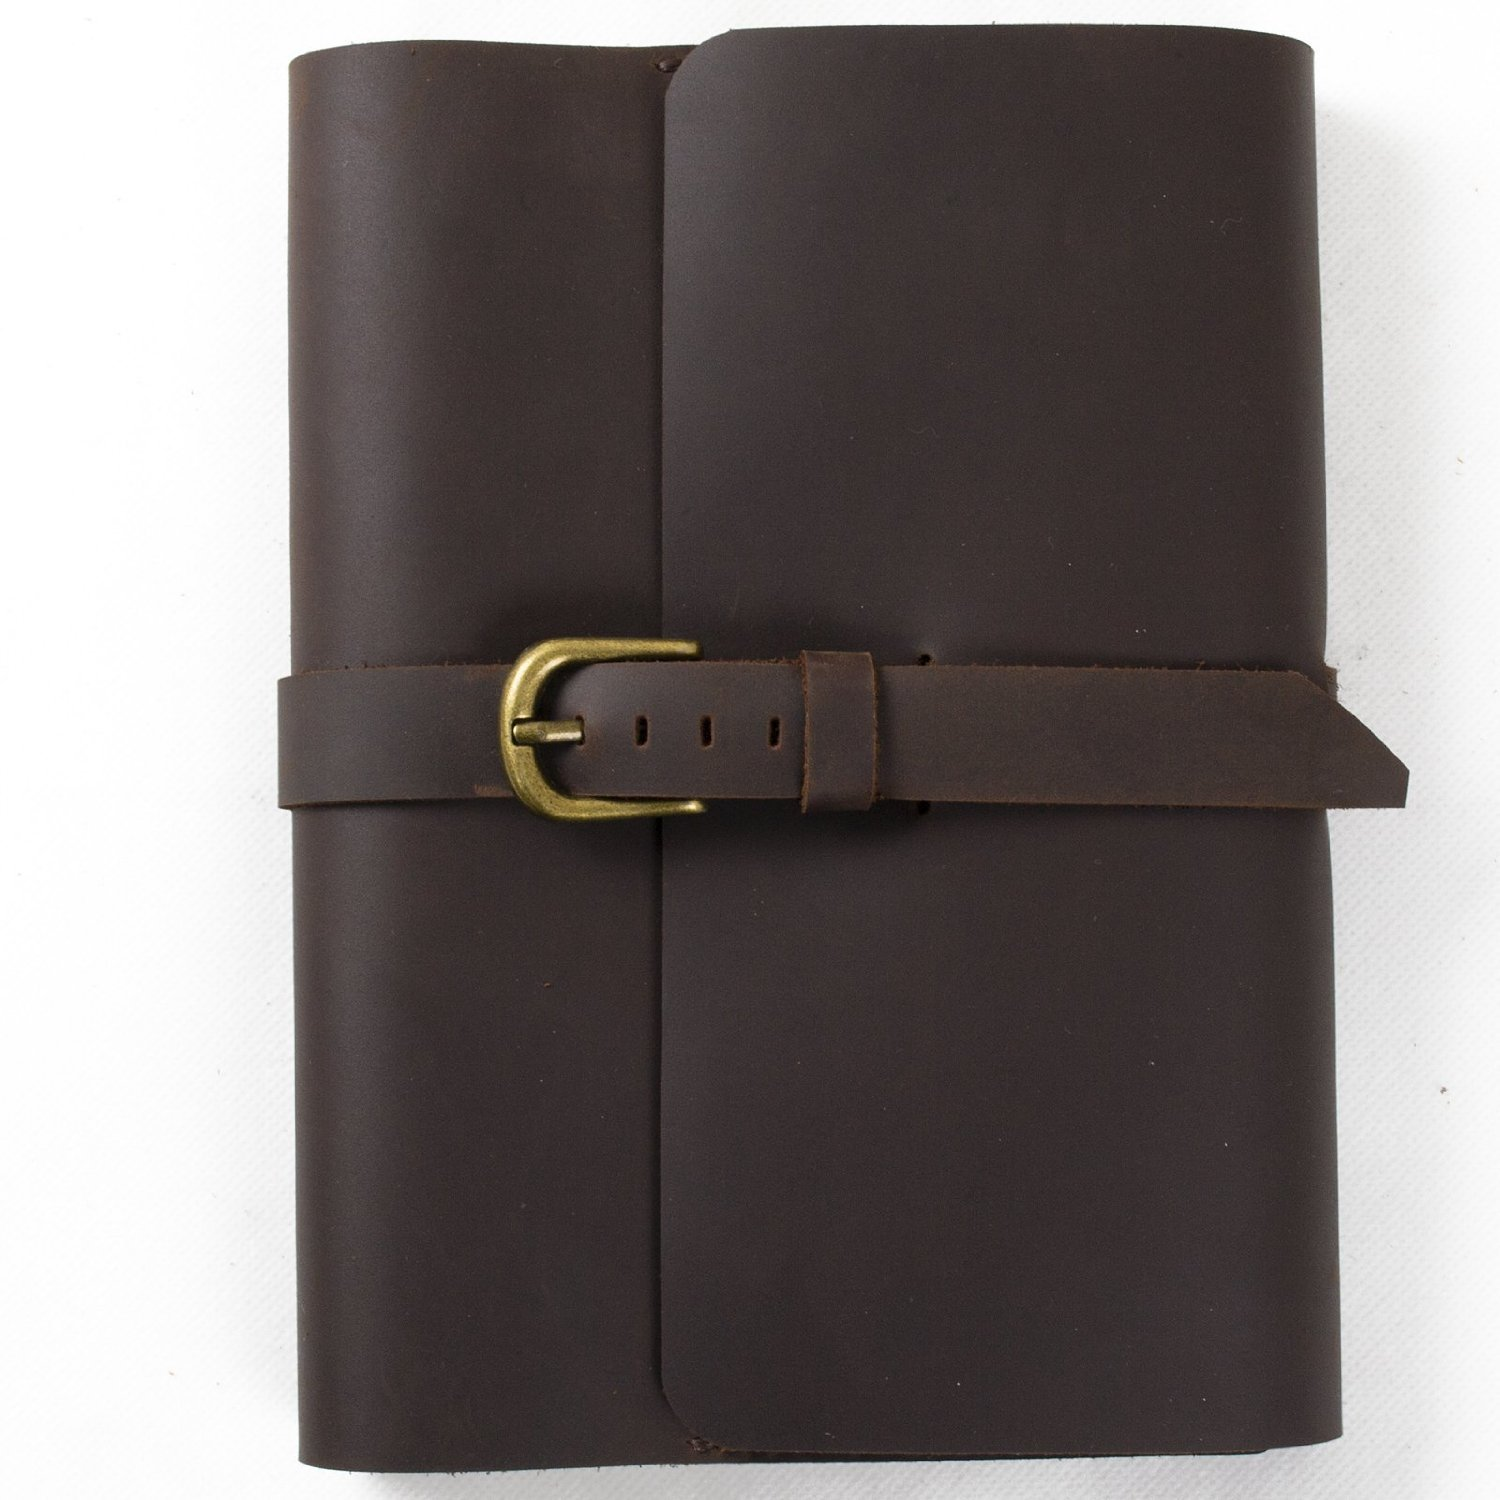 Genuine Leather Handmade Diary Journal Notebook Sketchbook Classic Refillable Composition Book Cover with Strap Buckle - (Dark Brown & Lined Craft Paper A5 )